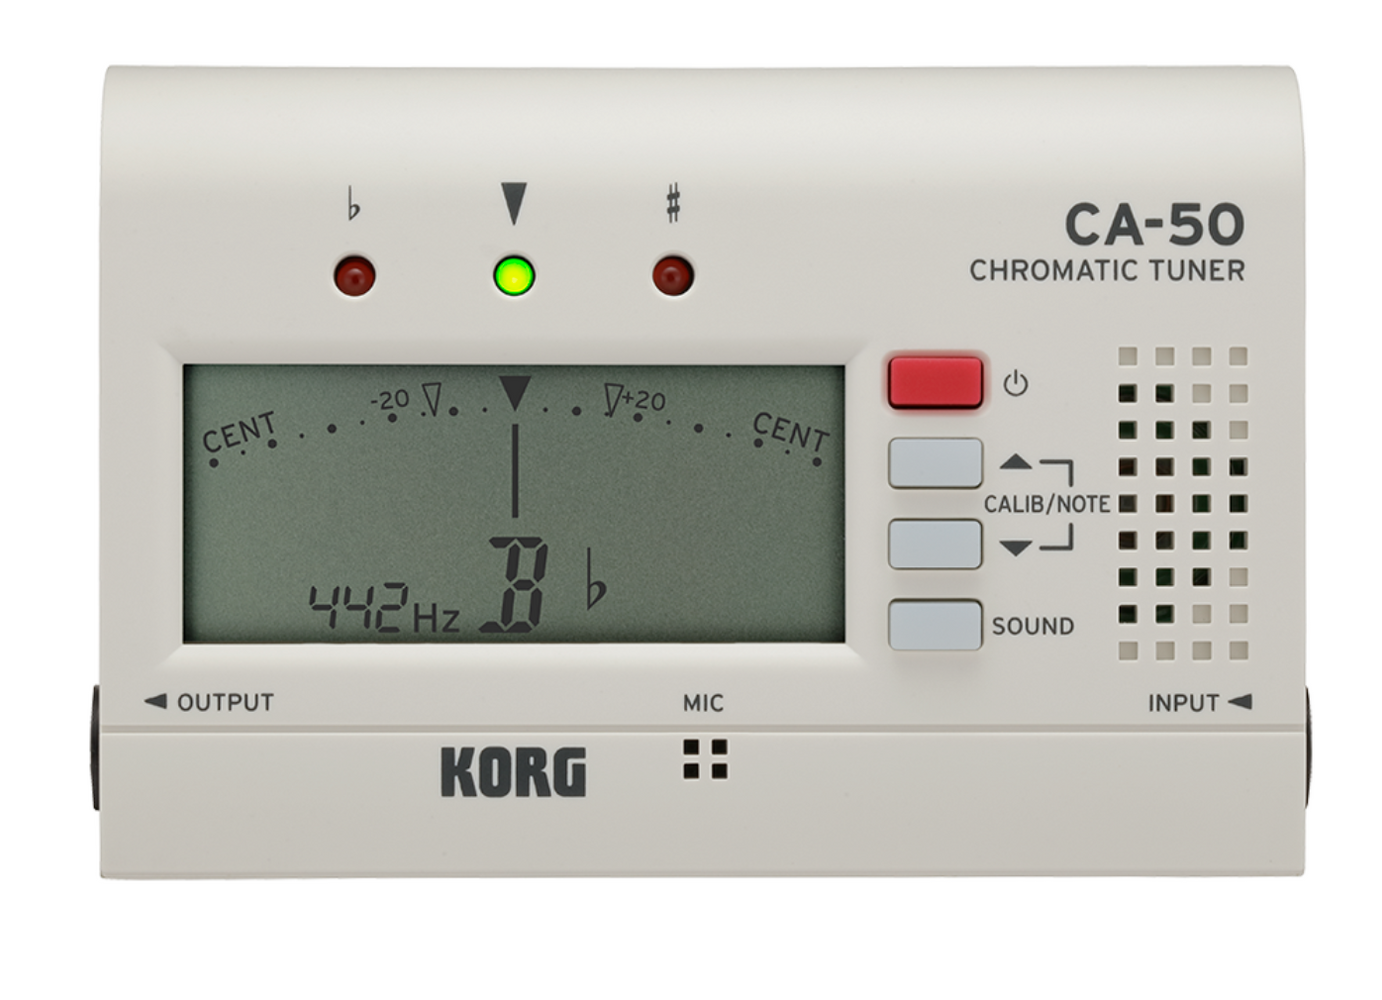 Korg CA50 Chromatic Tuner - features high-precision tuning functionality and a slim and compact design